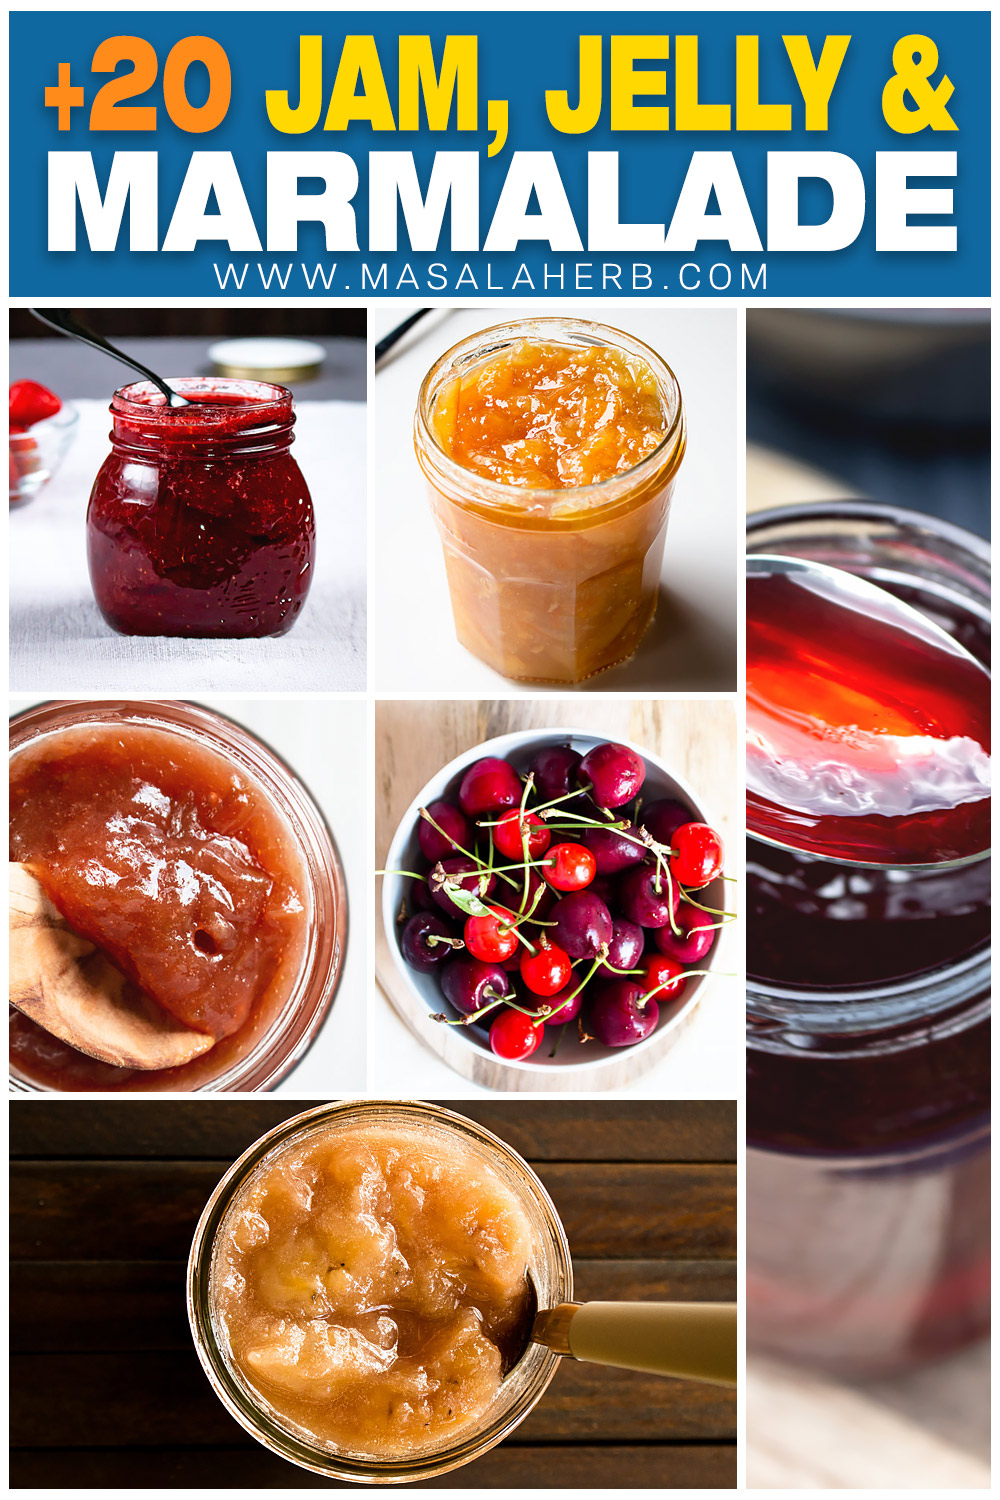 +20 Jam, Jelly and Marmalade Recipe pin image